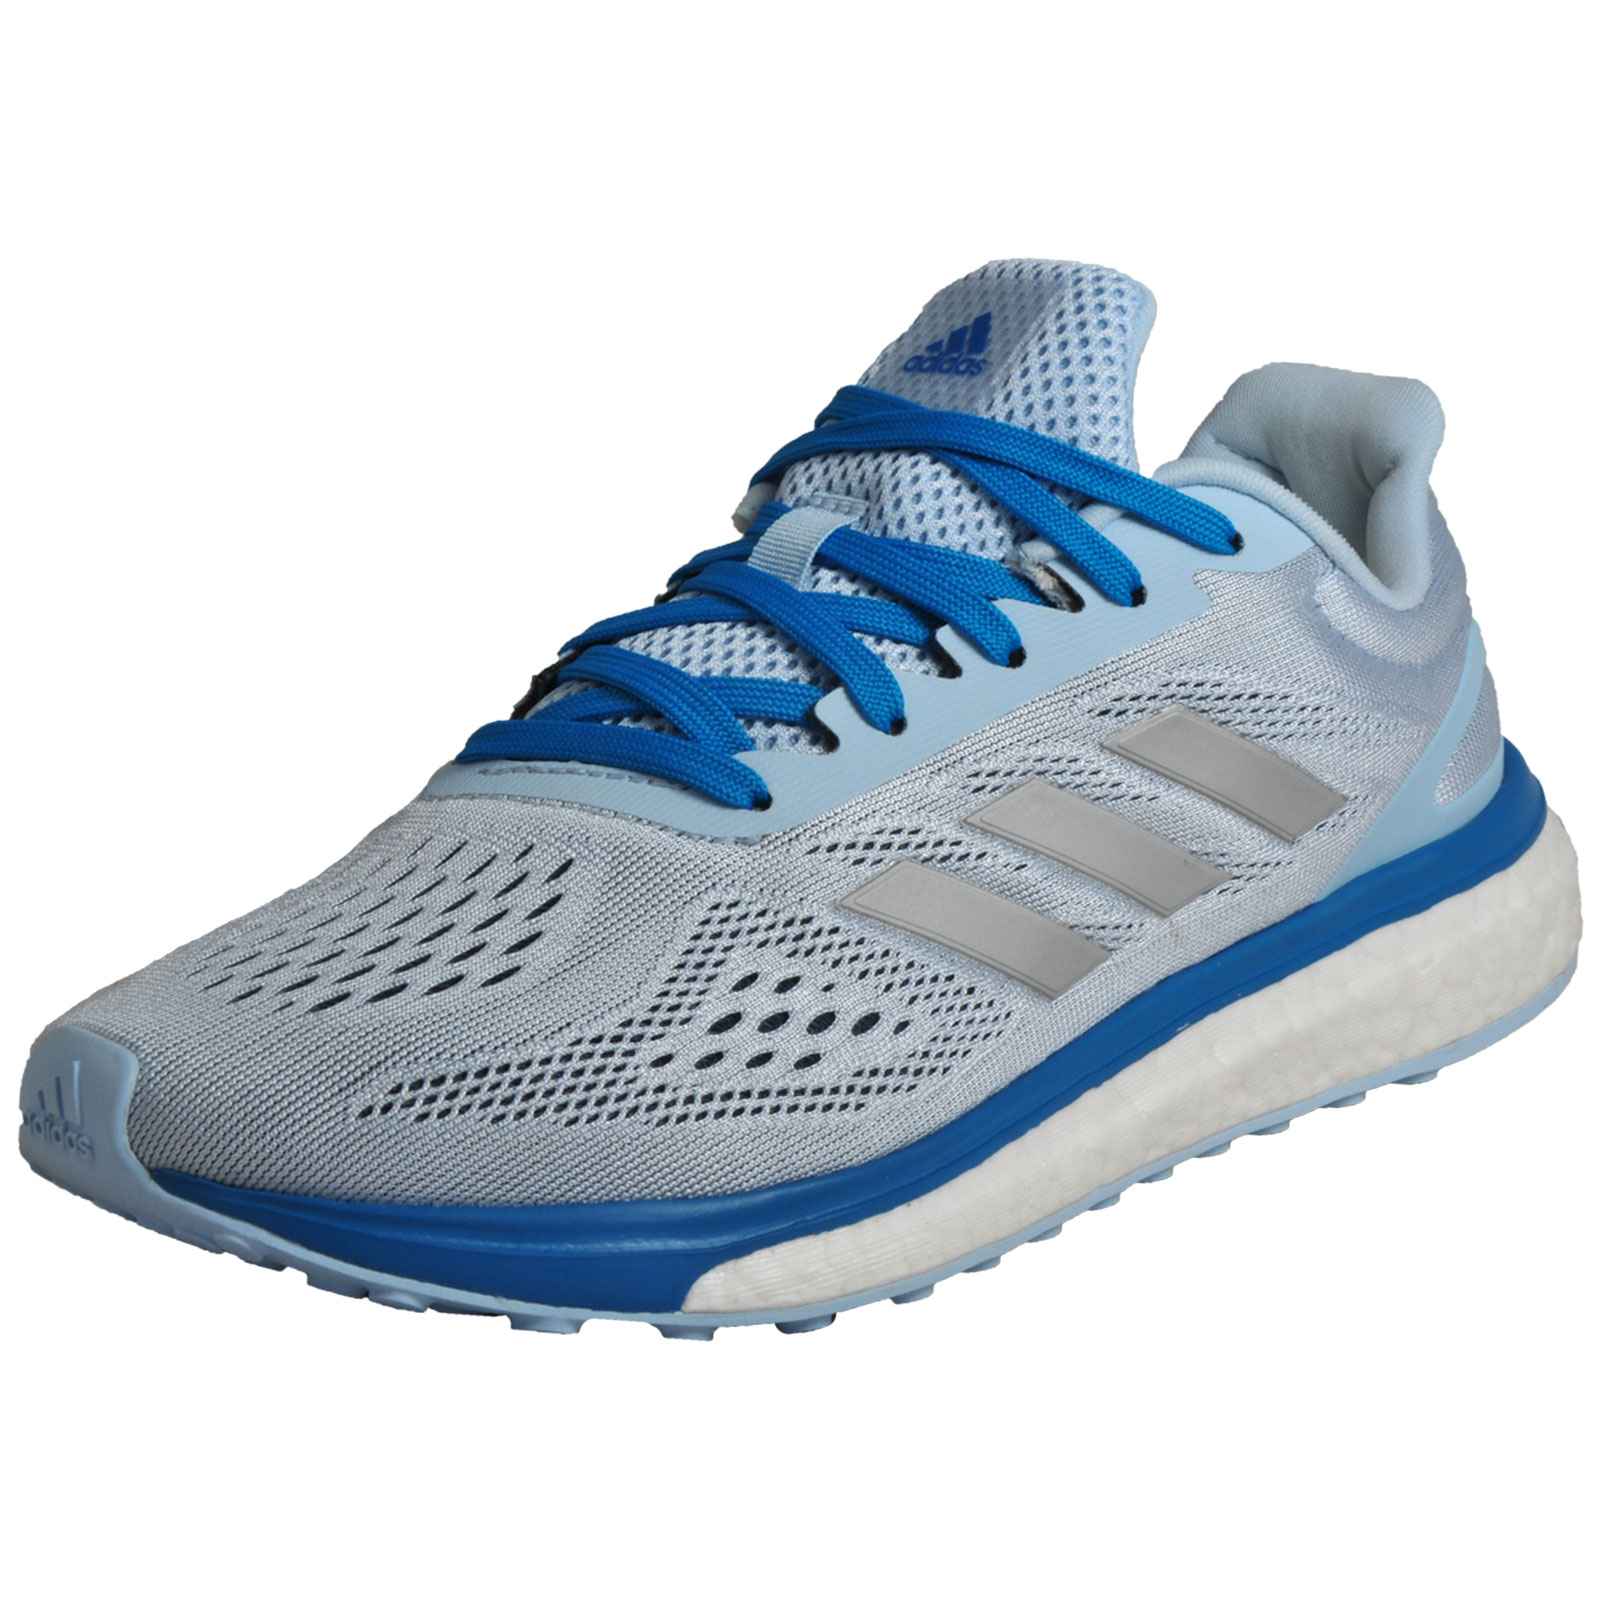 451c37c0a6a2 Details about Adidas Response Lt Boost Womens Premium Running Shoes  Trainers Silver Blue